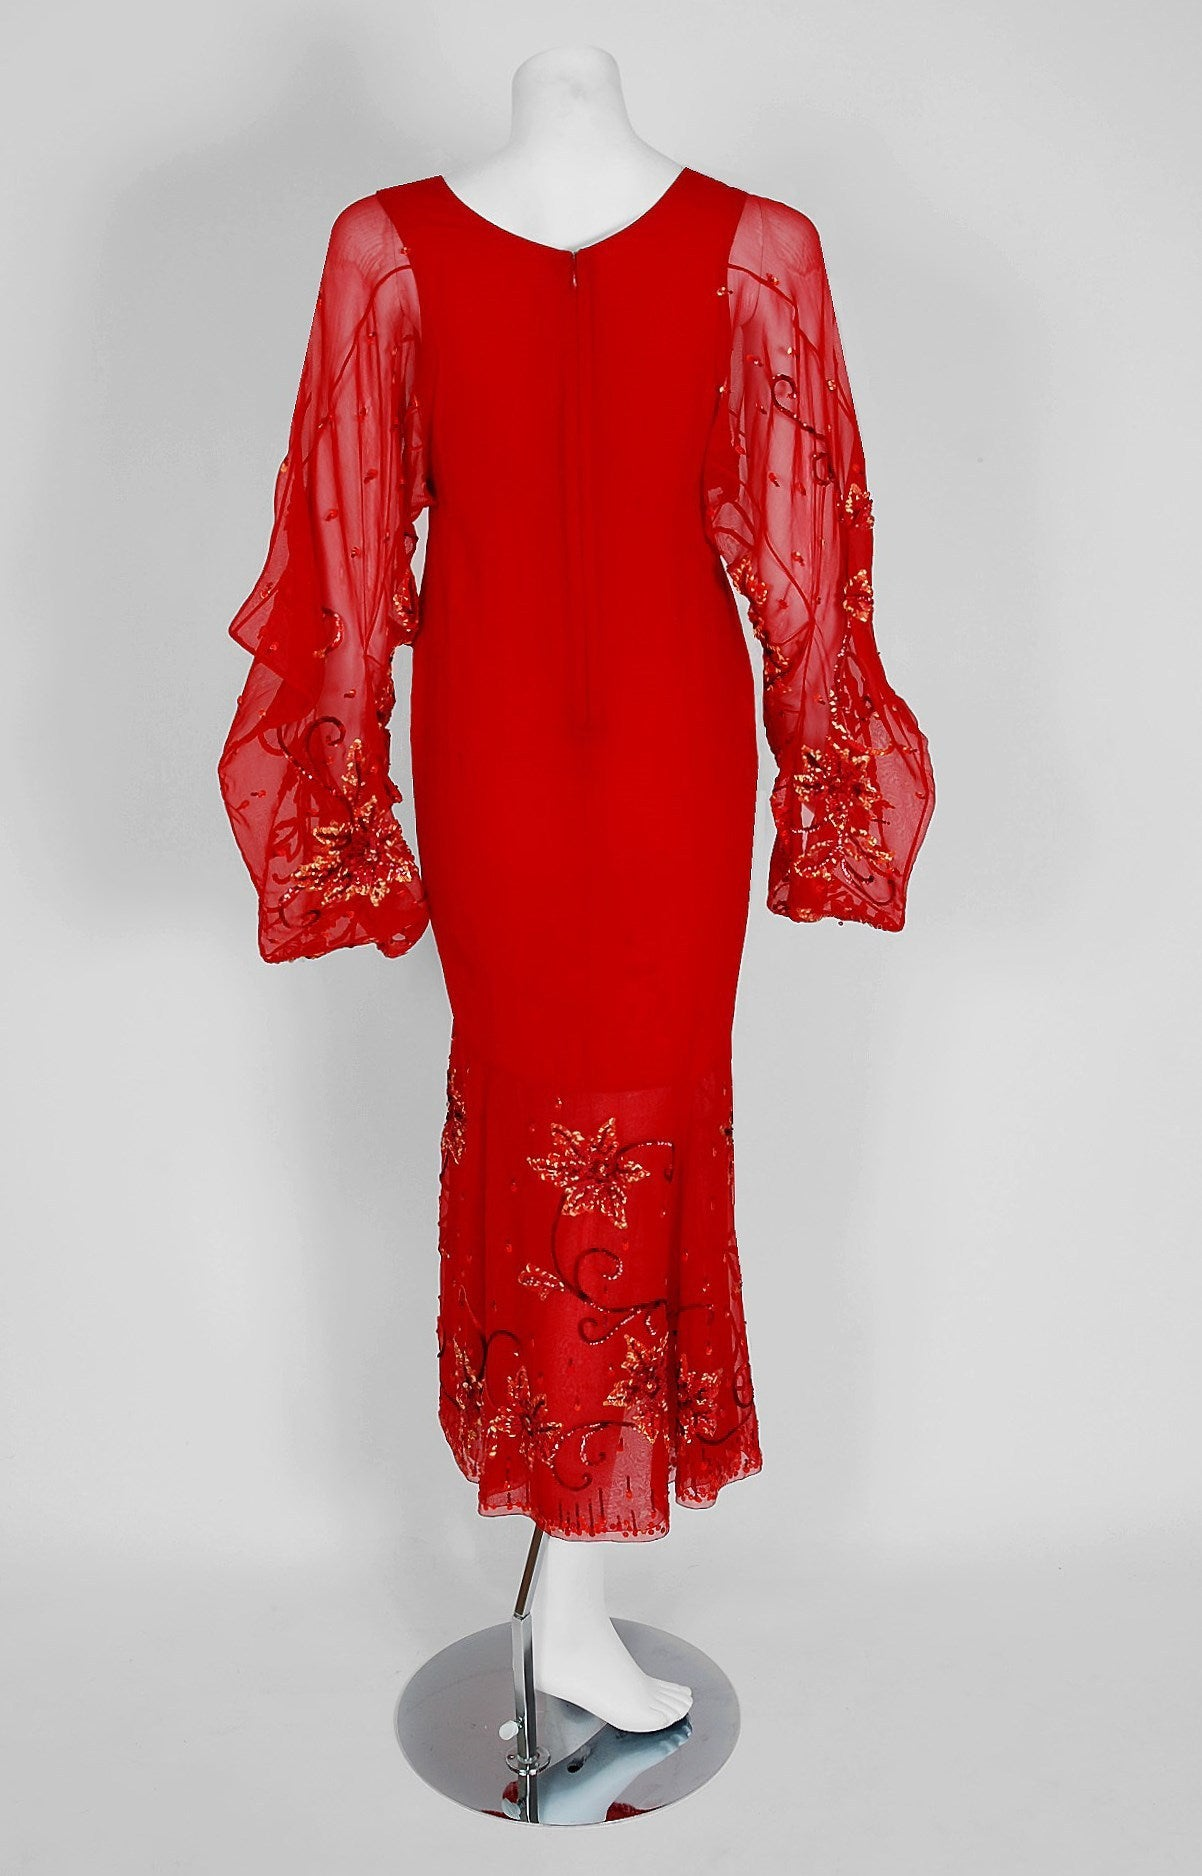 2003 Christian Dior Haute-Couture Red Beaded Chiffon Kimono-Sleeve Evening Gown 5